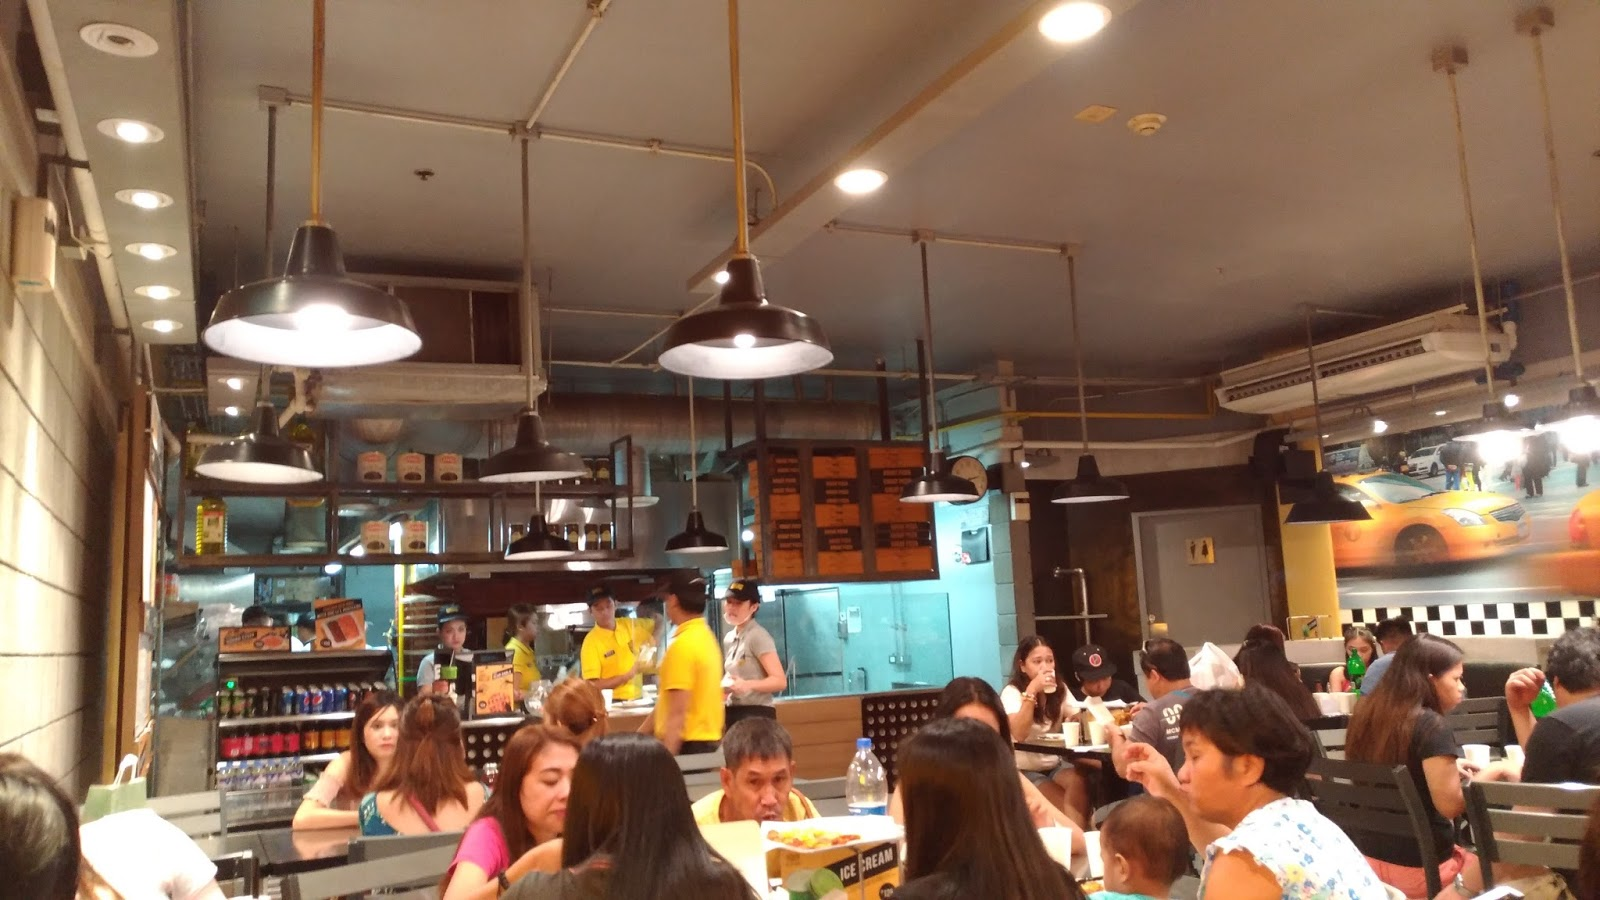 Unlimited Pizza Yellow Cab Philippines